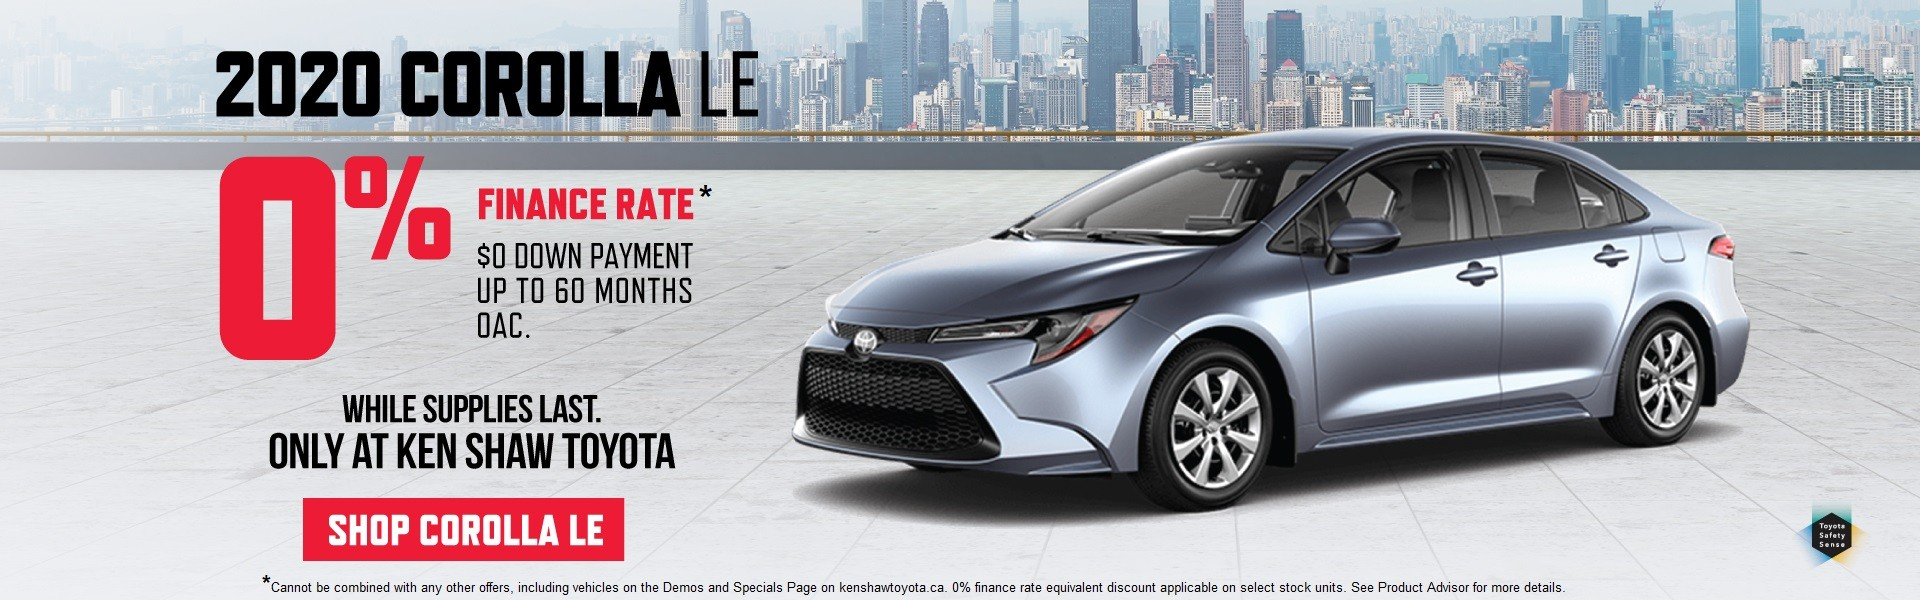 Corolla on sale at Ken Shaw Toyota in Toronto Promotion